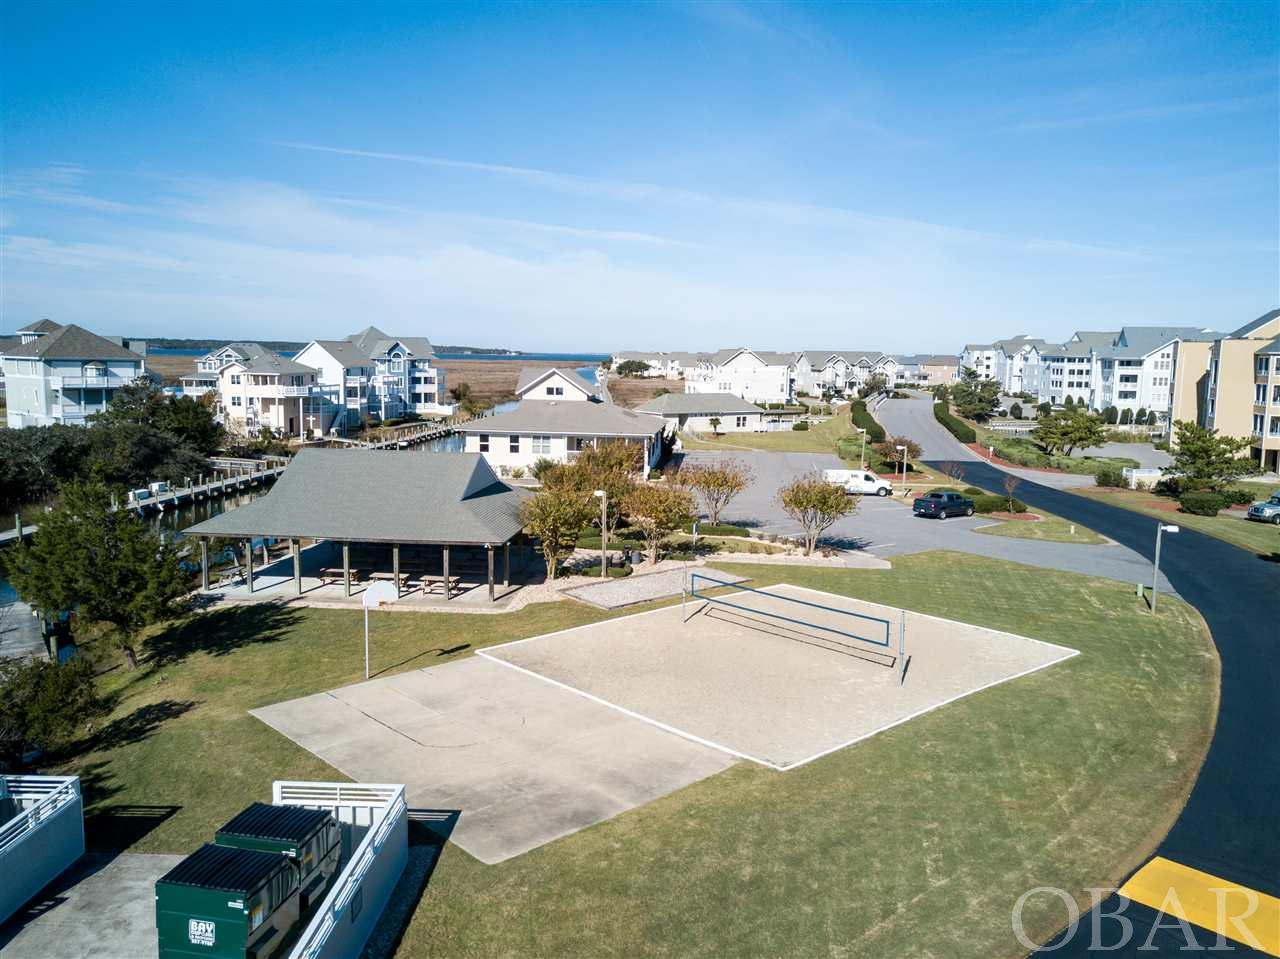 9 Rudder Court, Manteo, NC 27954, ,Lots/land,For sale,Rudder Court,105234